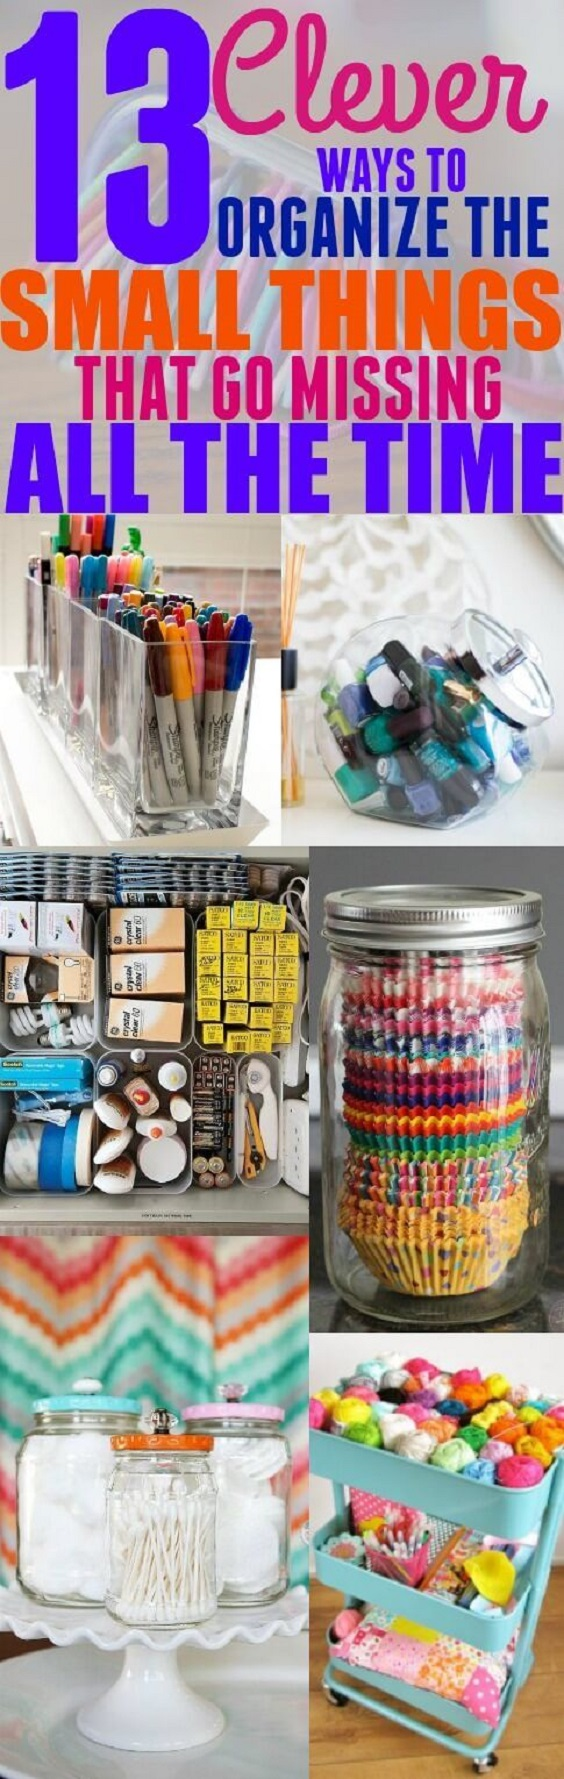 Small things like a phone charger or hair ties can make your home look untidy, but if you follow some of these brilliant hacks, you can organize them in no time!